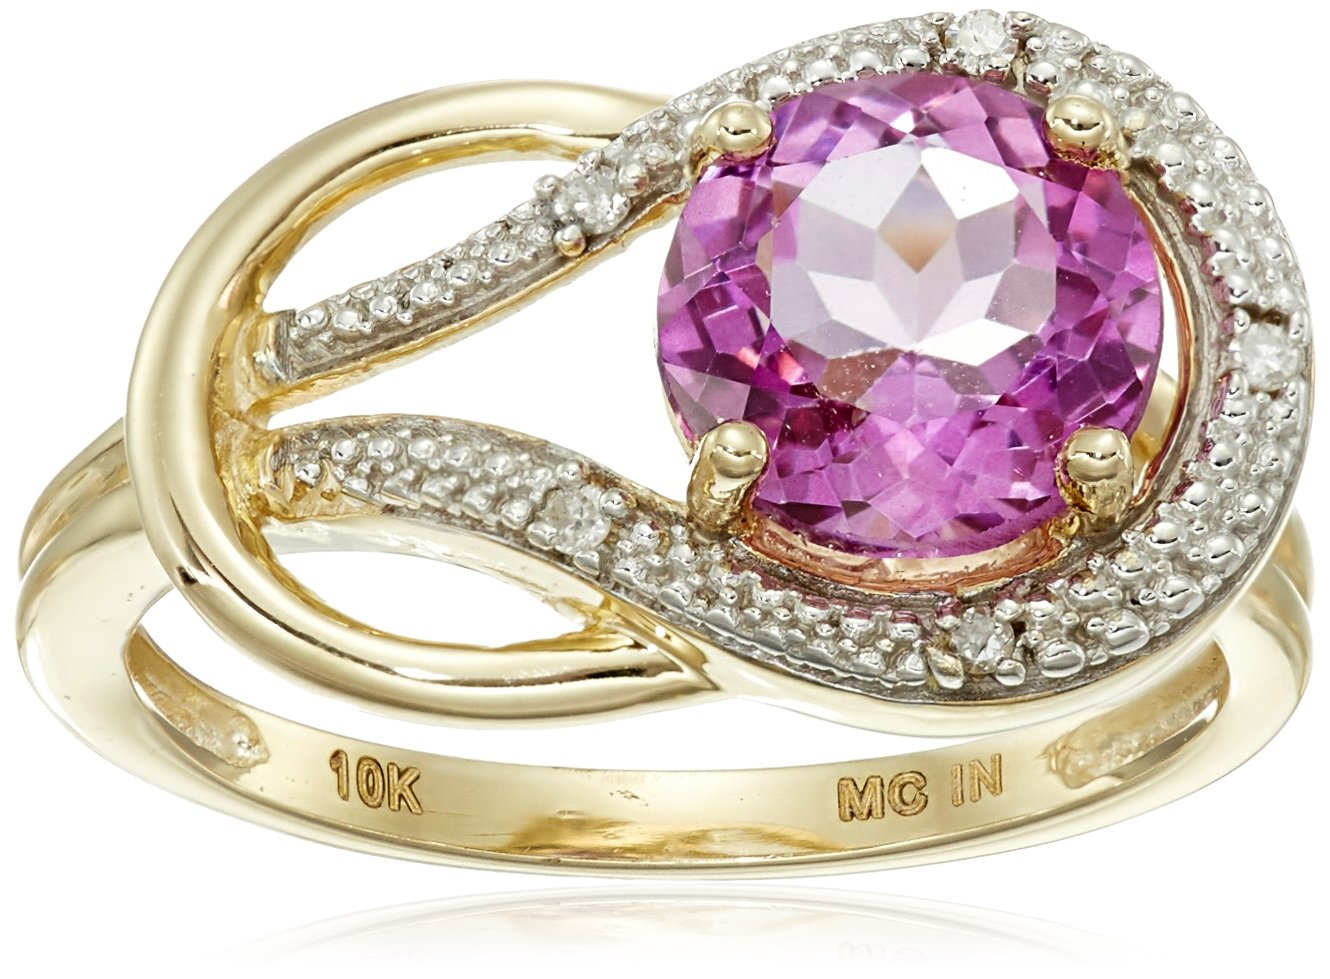 Pink Topaz and Diamond Accent Love Knot Ring in 10k Yellow Gold, Size 7